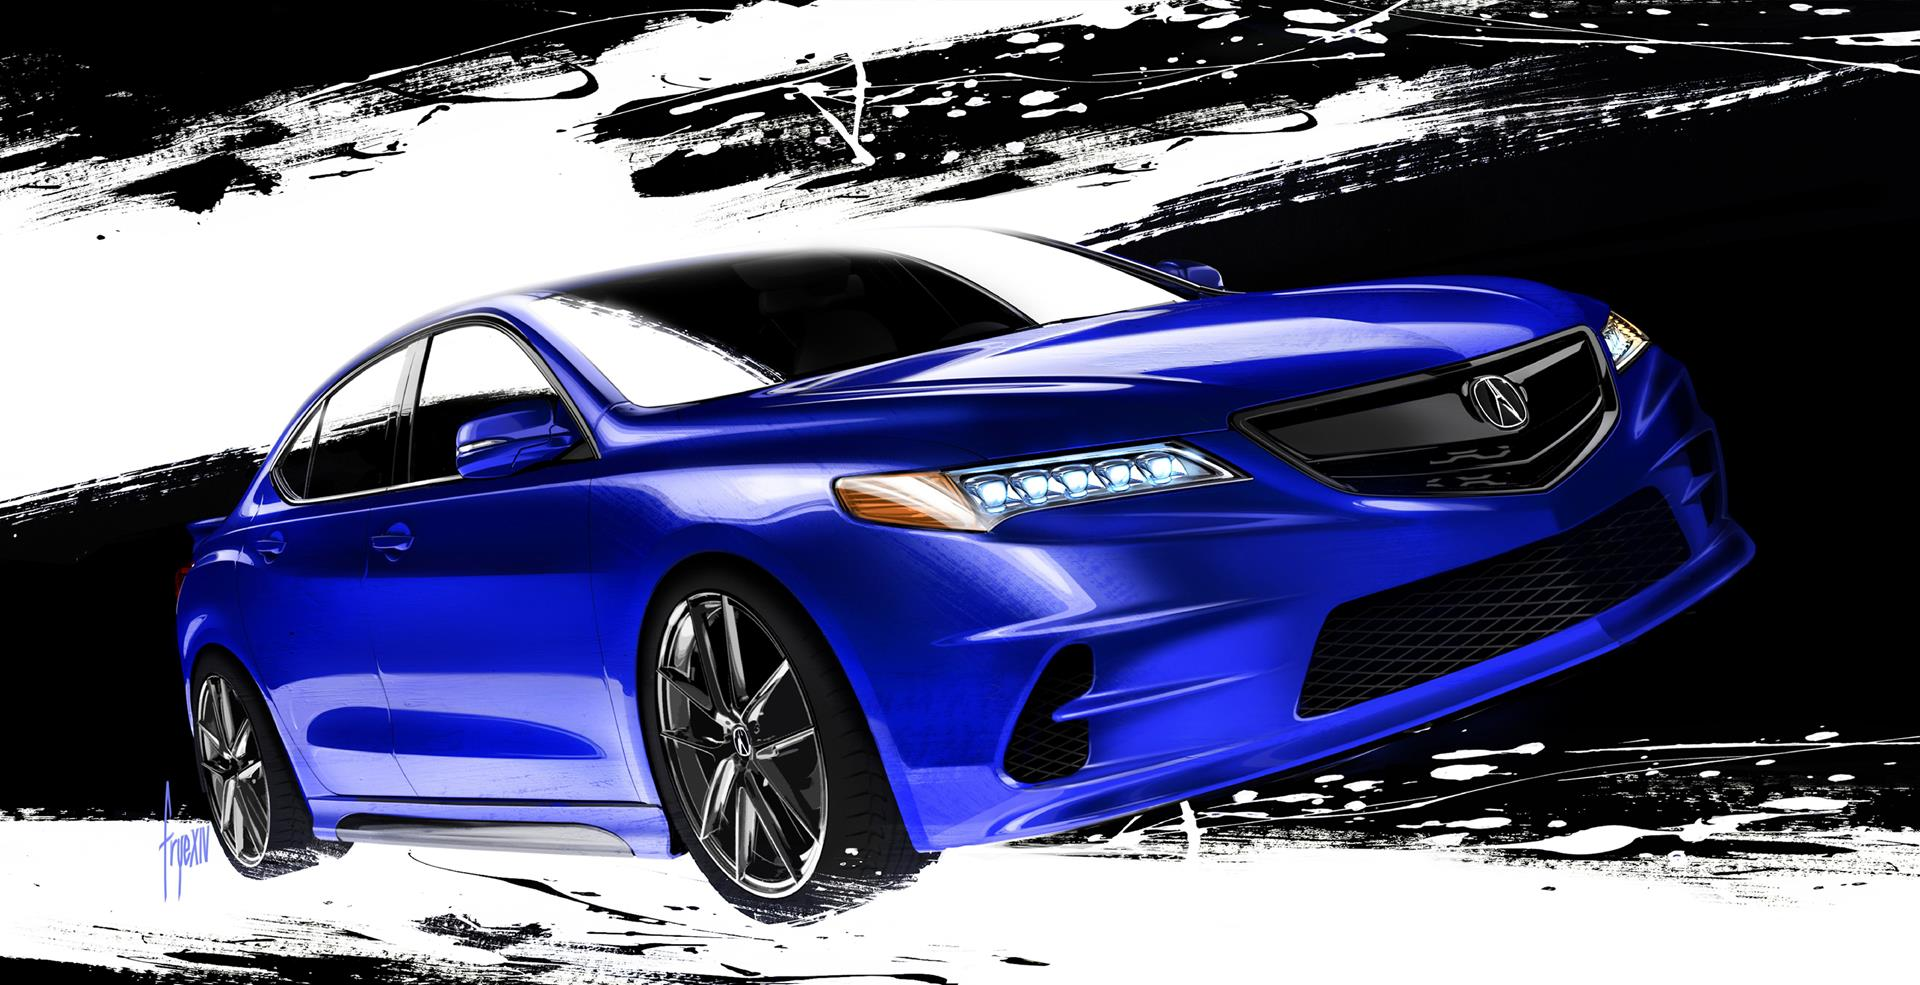 2015 Galpin Auto Sports TLX News and Information